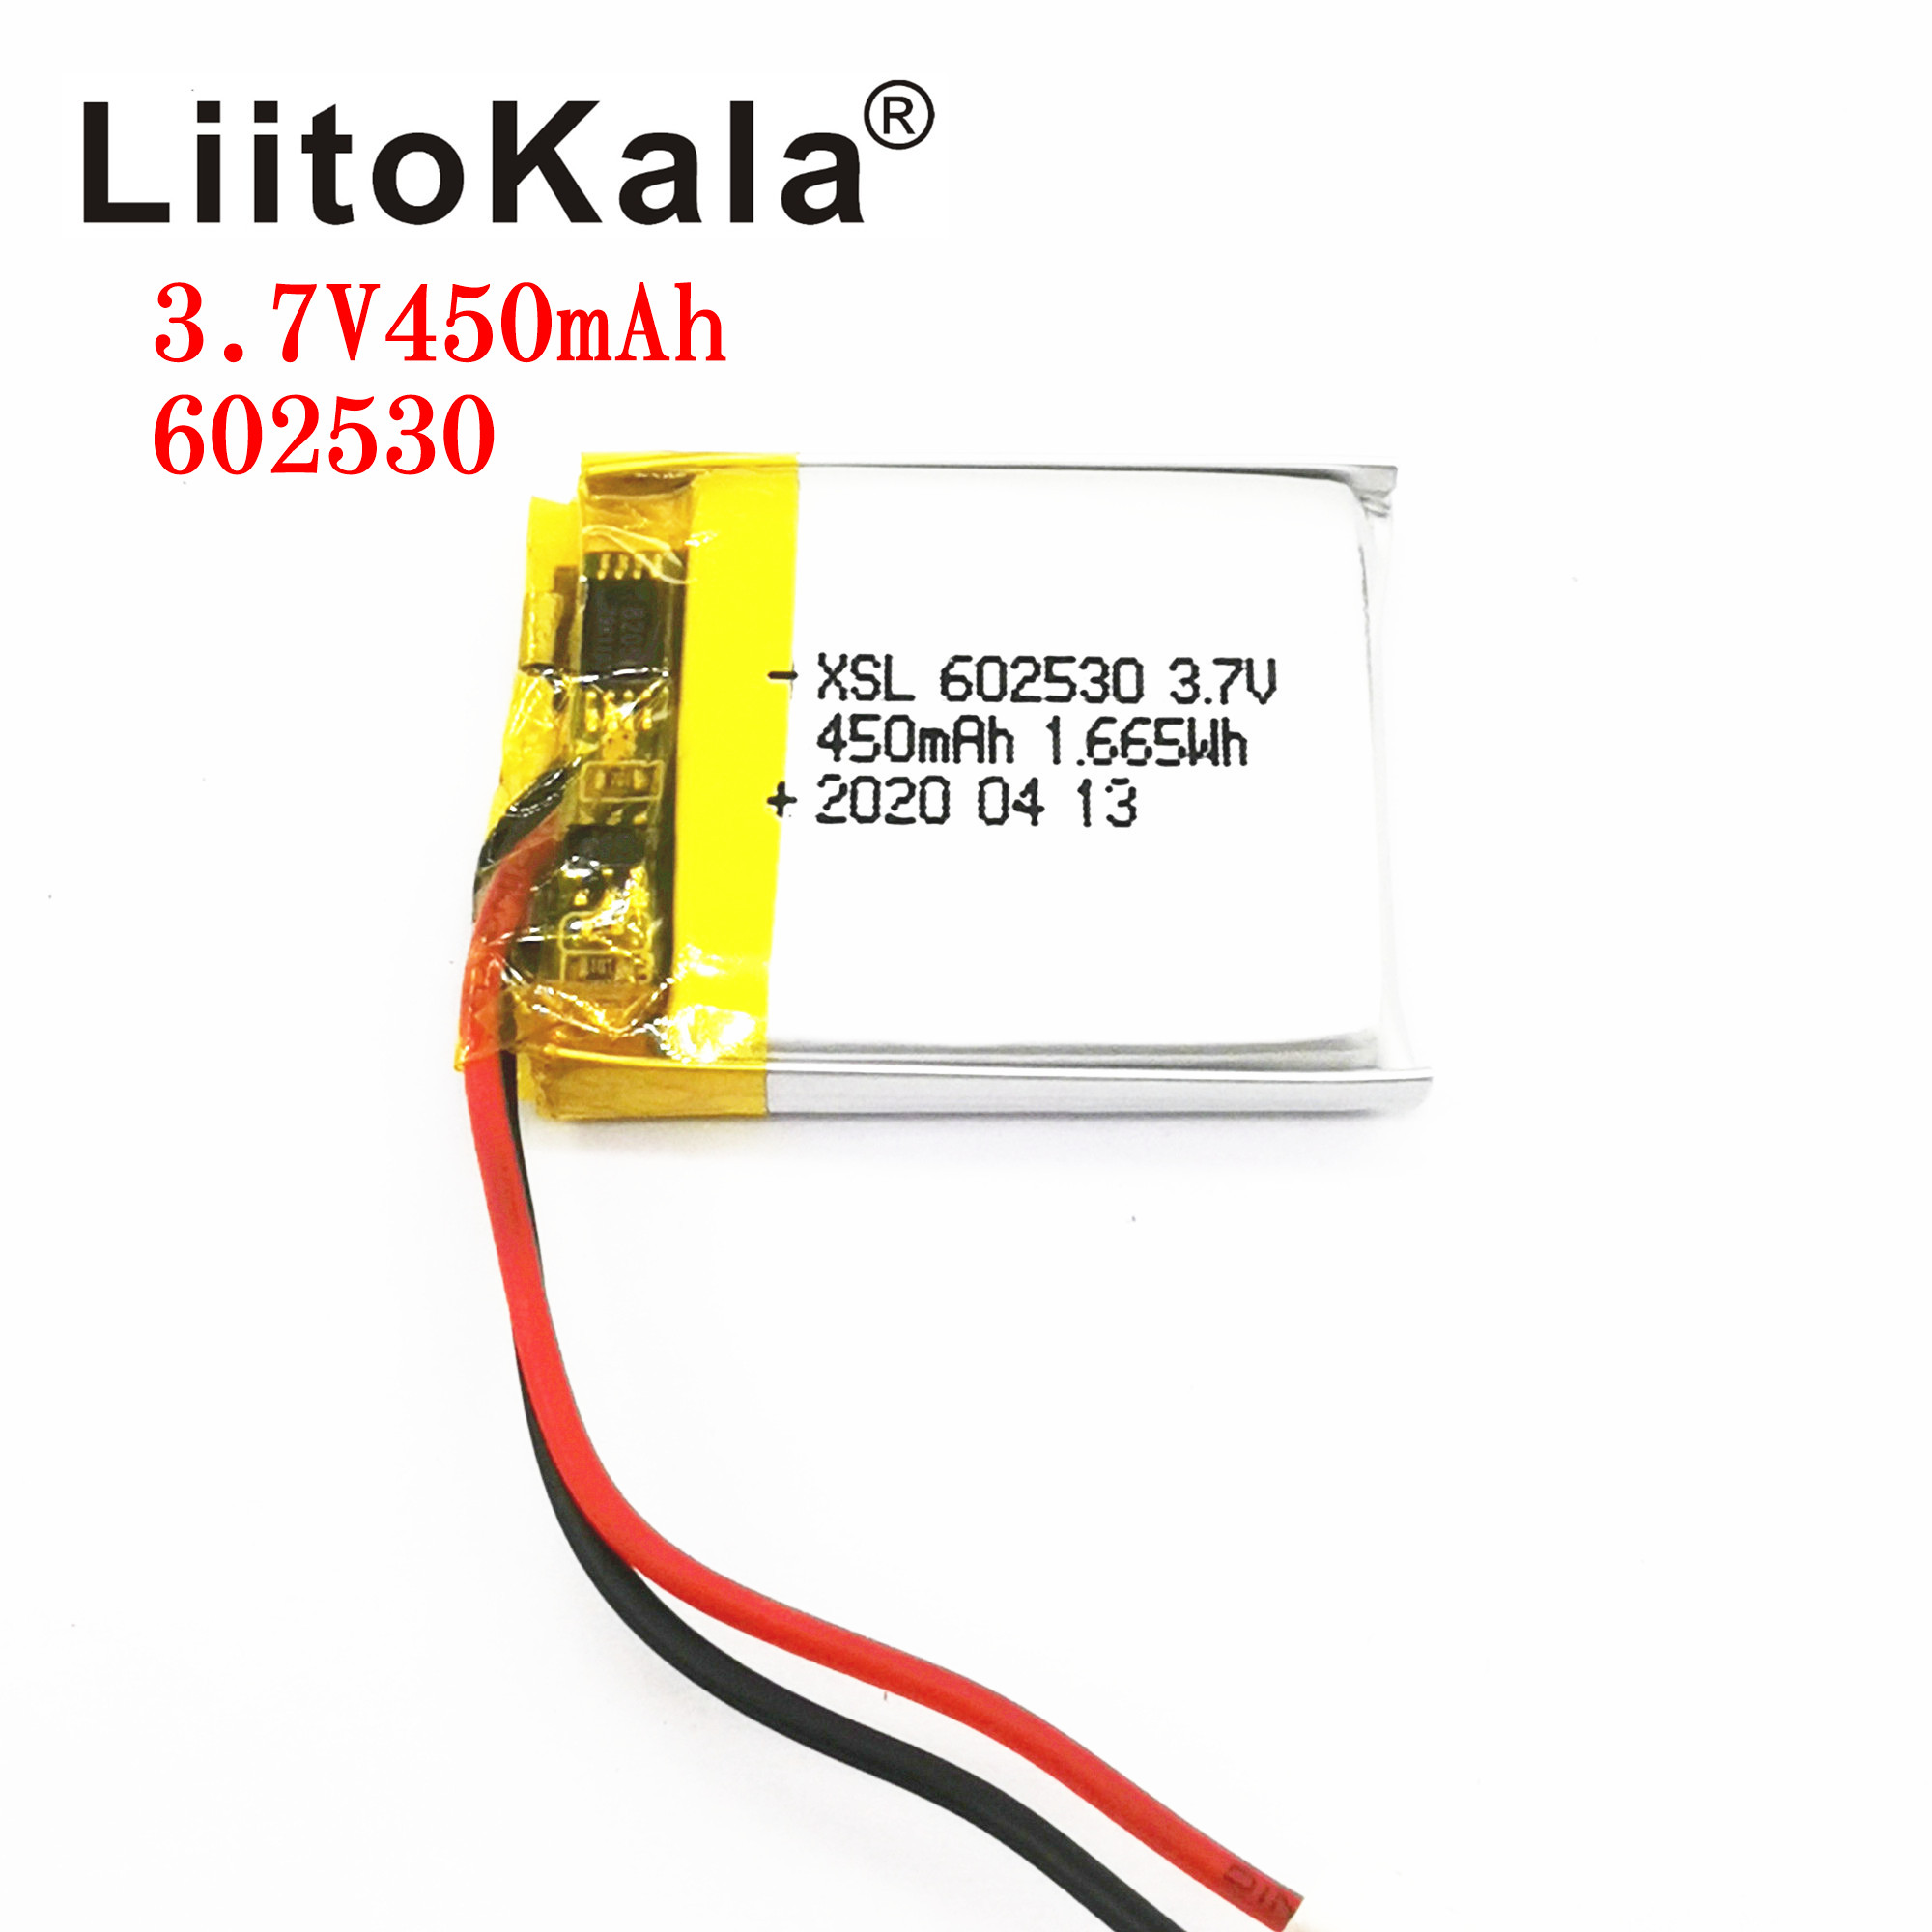 XSL <font><b>3.7V</b></font> 602530 <font><b>450mAh</b></font> Lithium Ion Polymer Battery <font><b>3.7v</b></font> Lithium Battery For MP4 MP5 GPS PSP Smart Watch Driving Recorder image